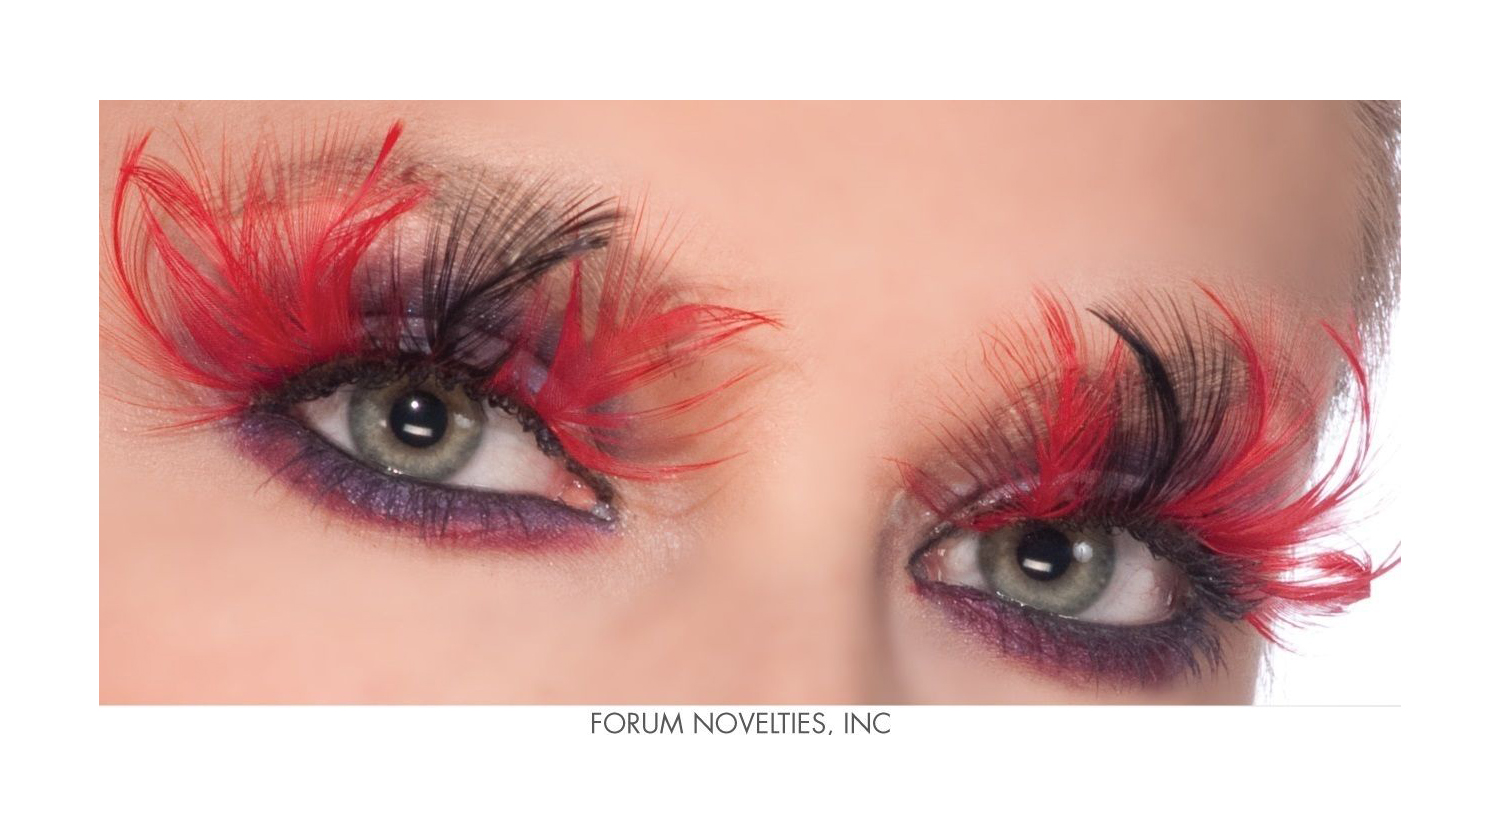 Details about Red Black Feather Devil Eye Lashes Eyelashes Theatrical Makeup Costume Accessory